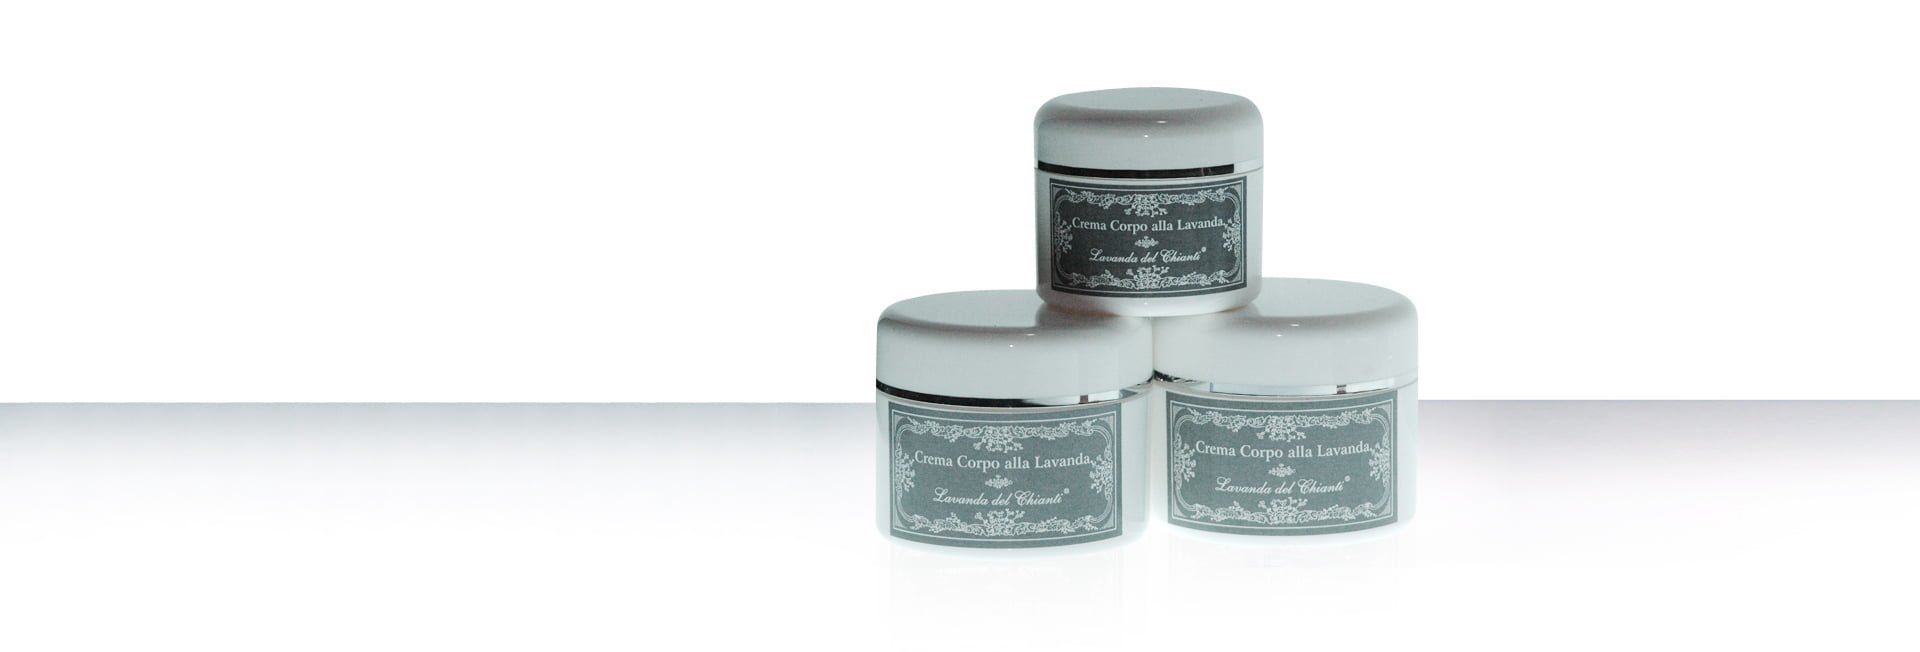 All-natural natural active ingredients inside this effective body cream